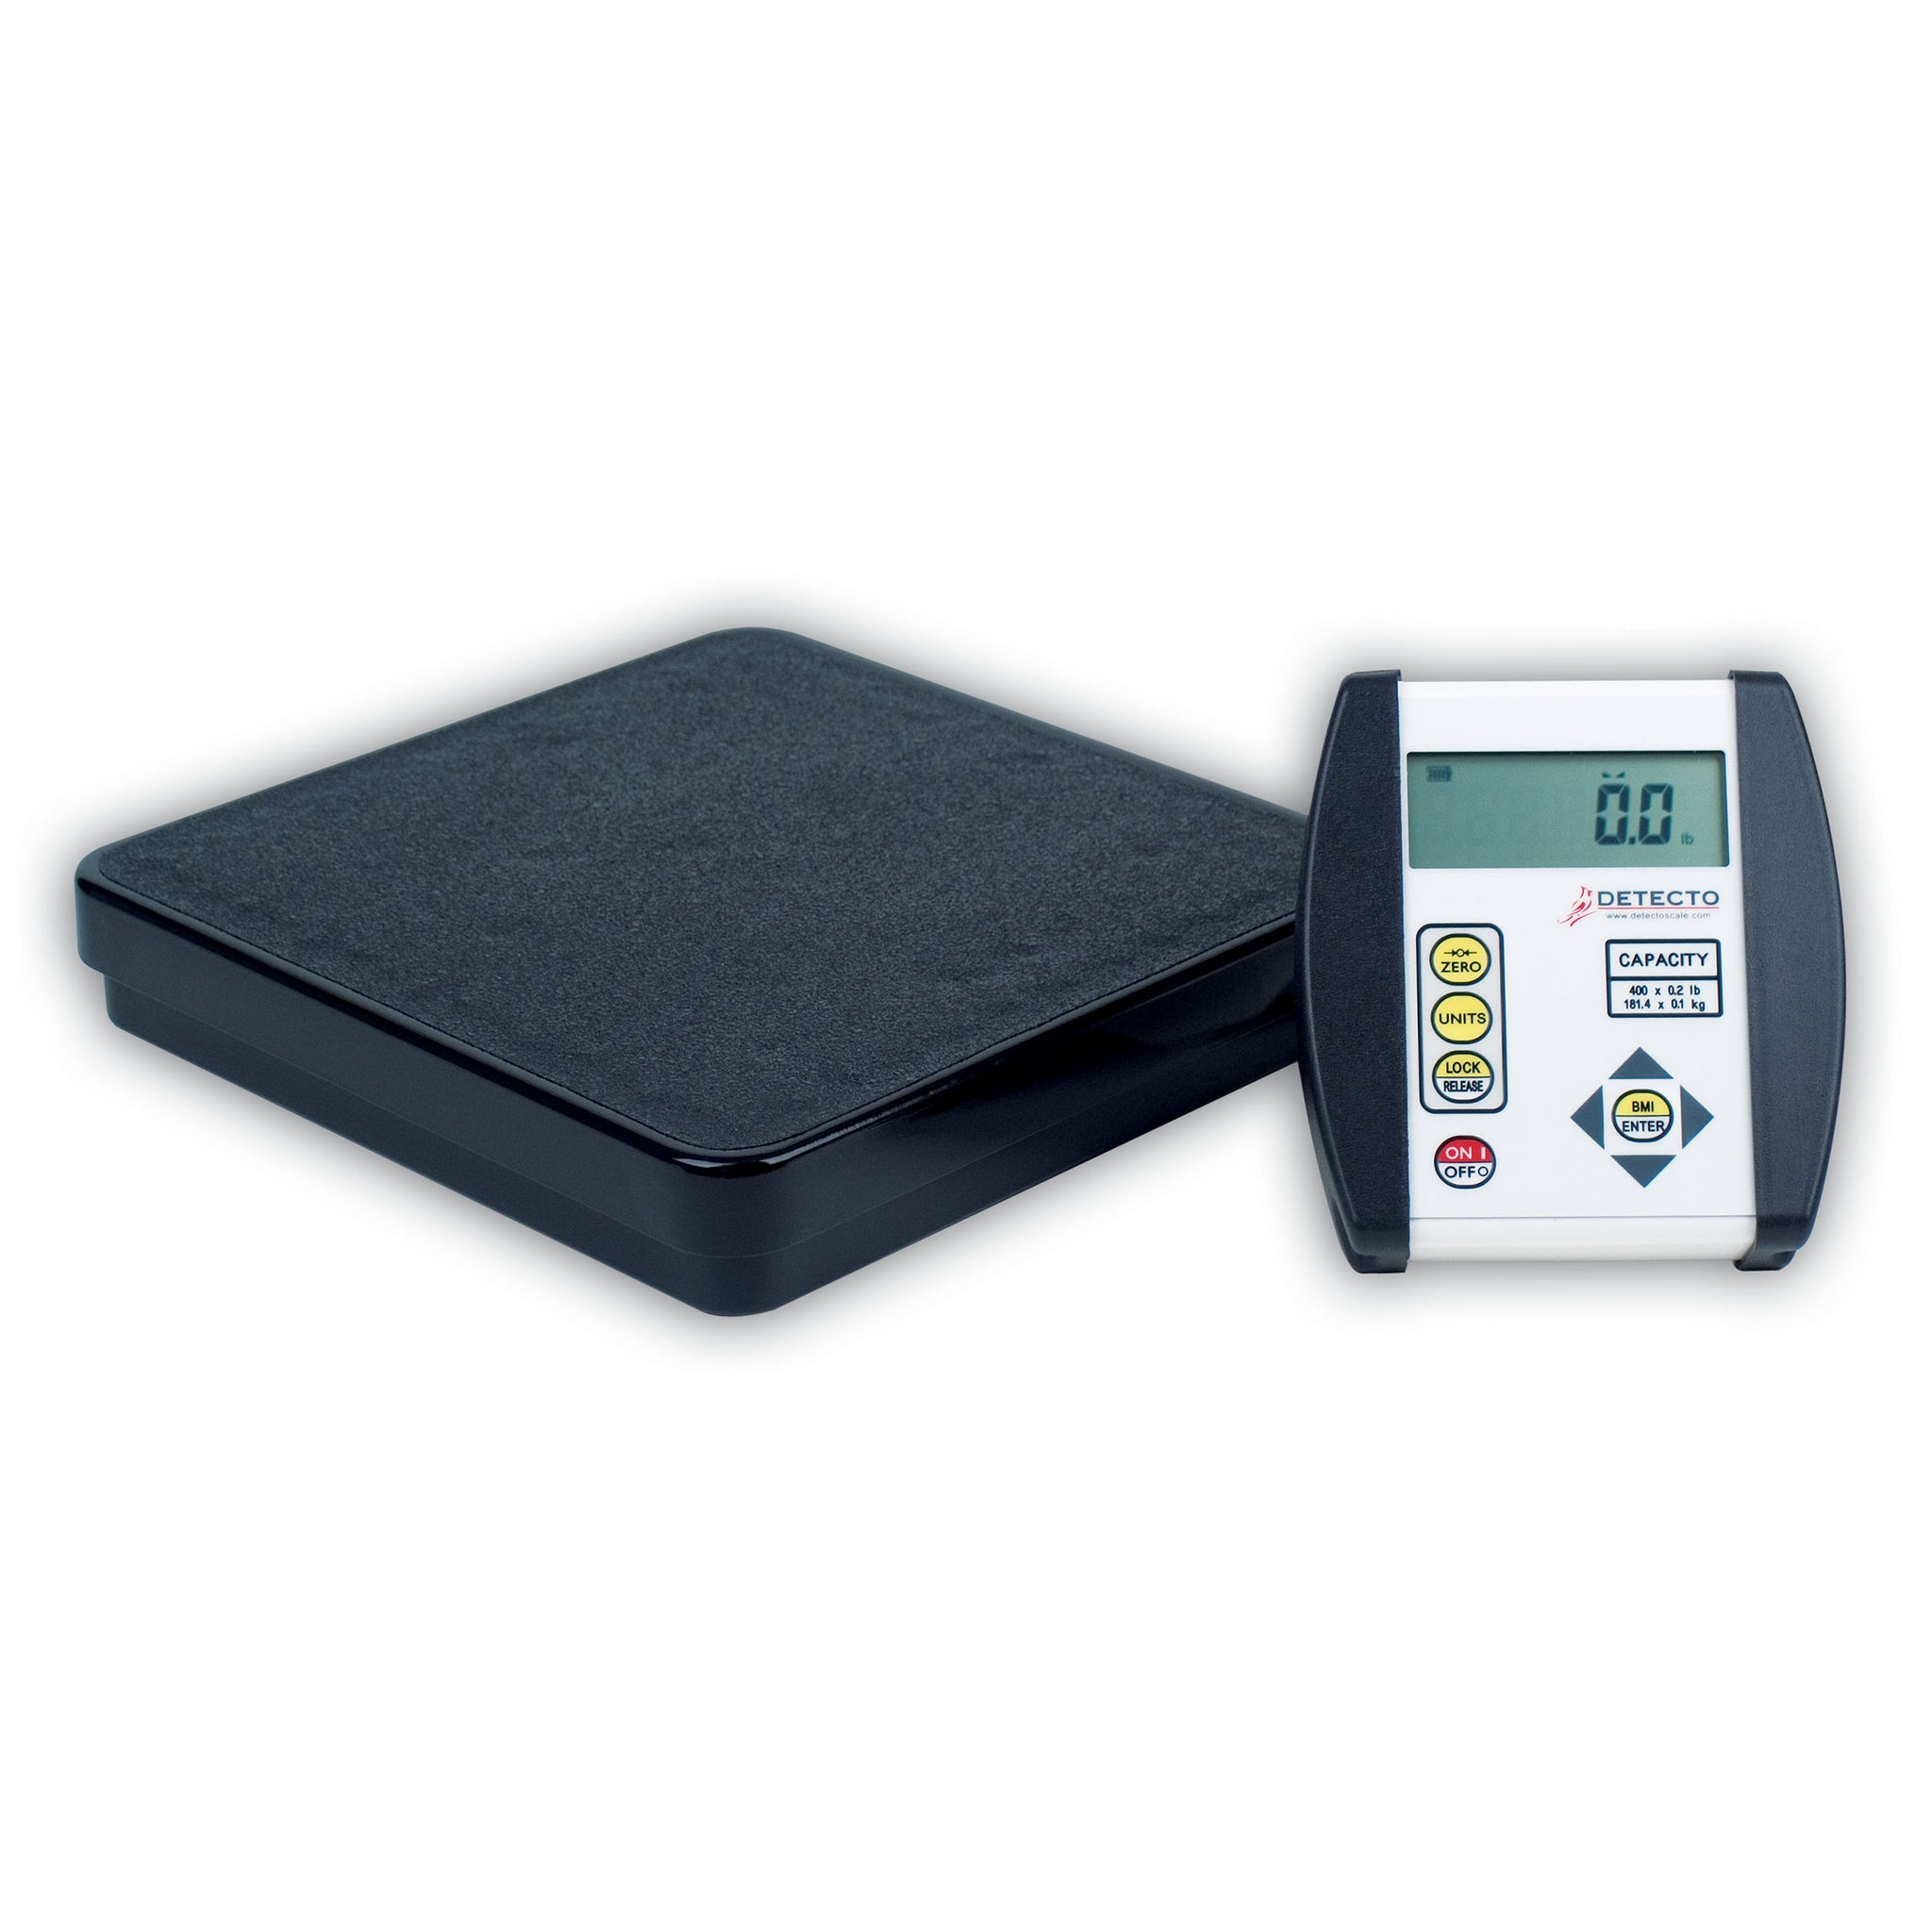 Detecto DR Series Portable Home Healthcare Scale with BMI